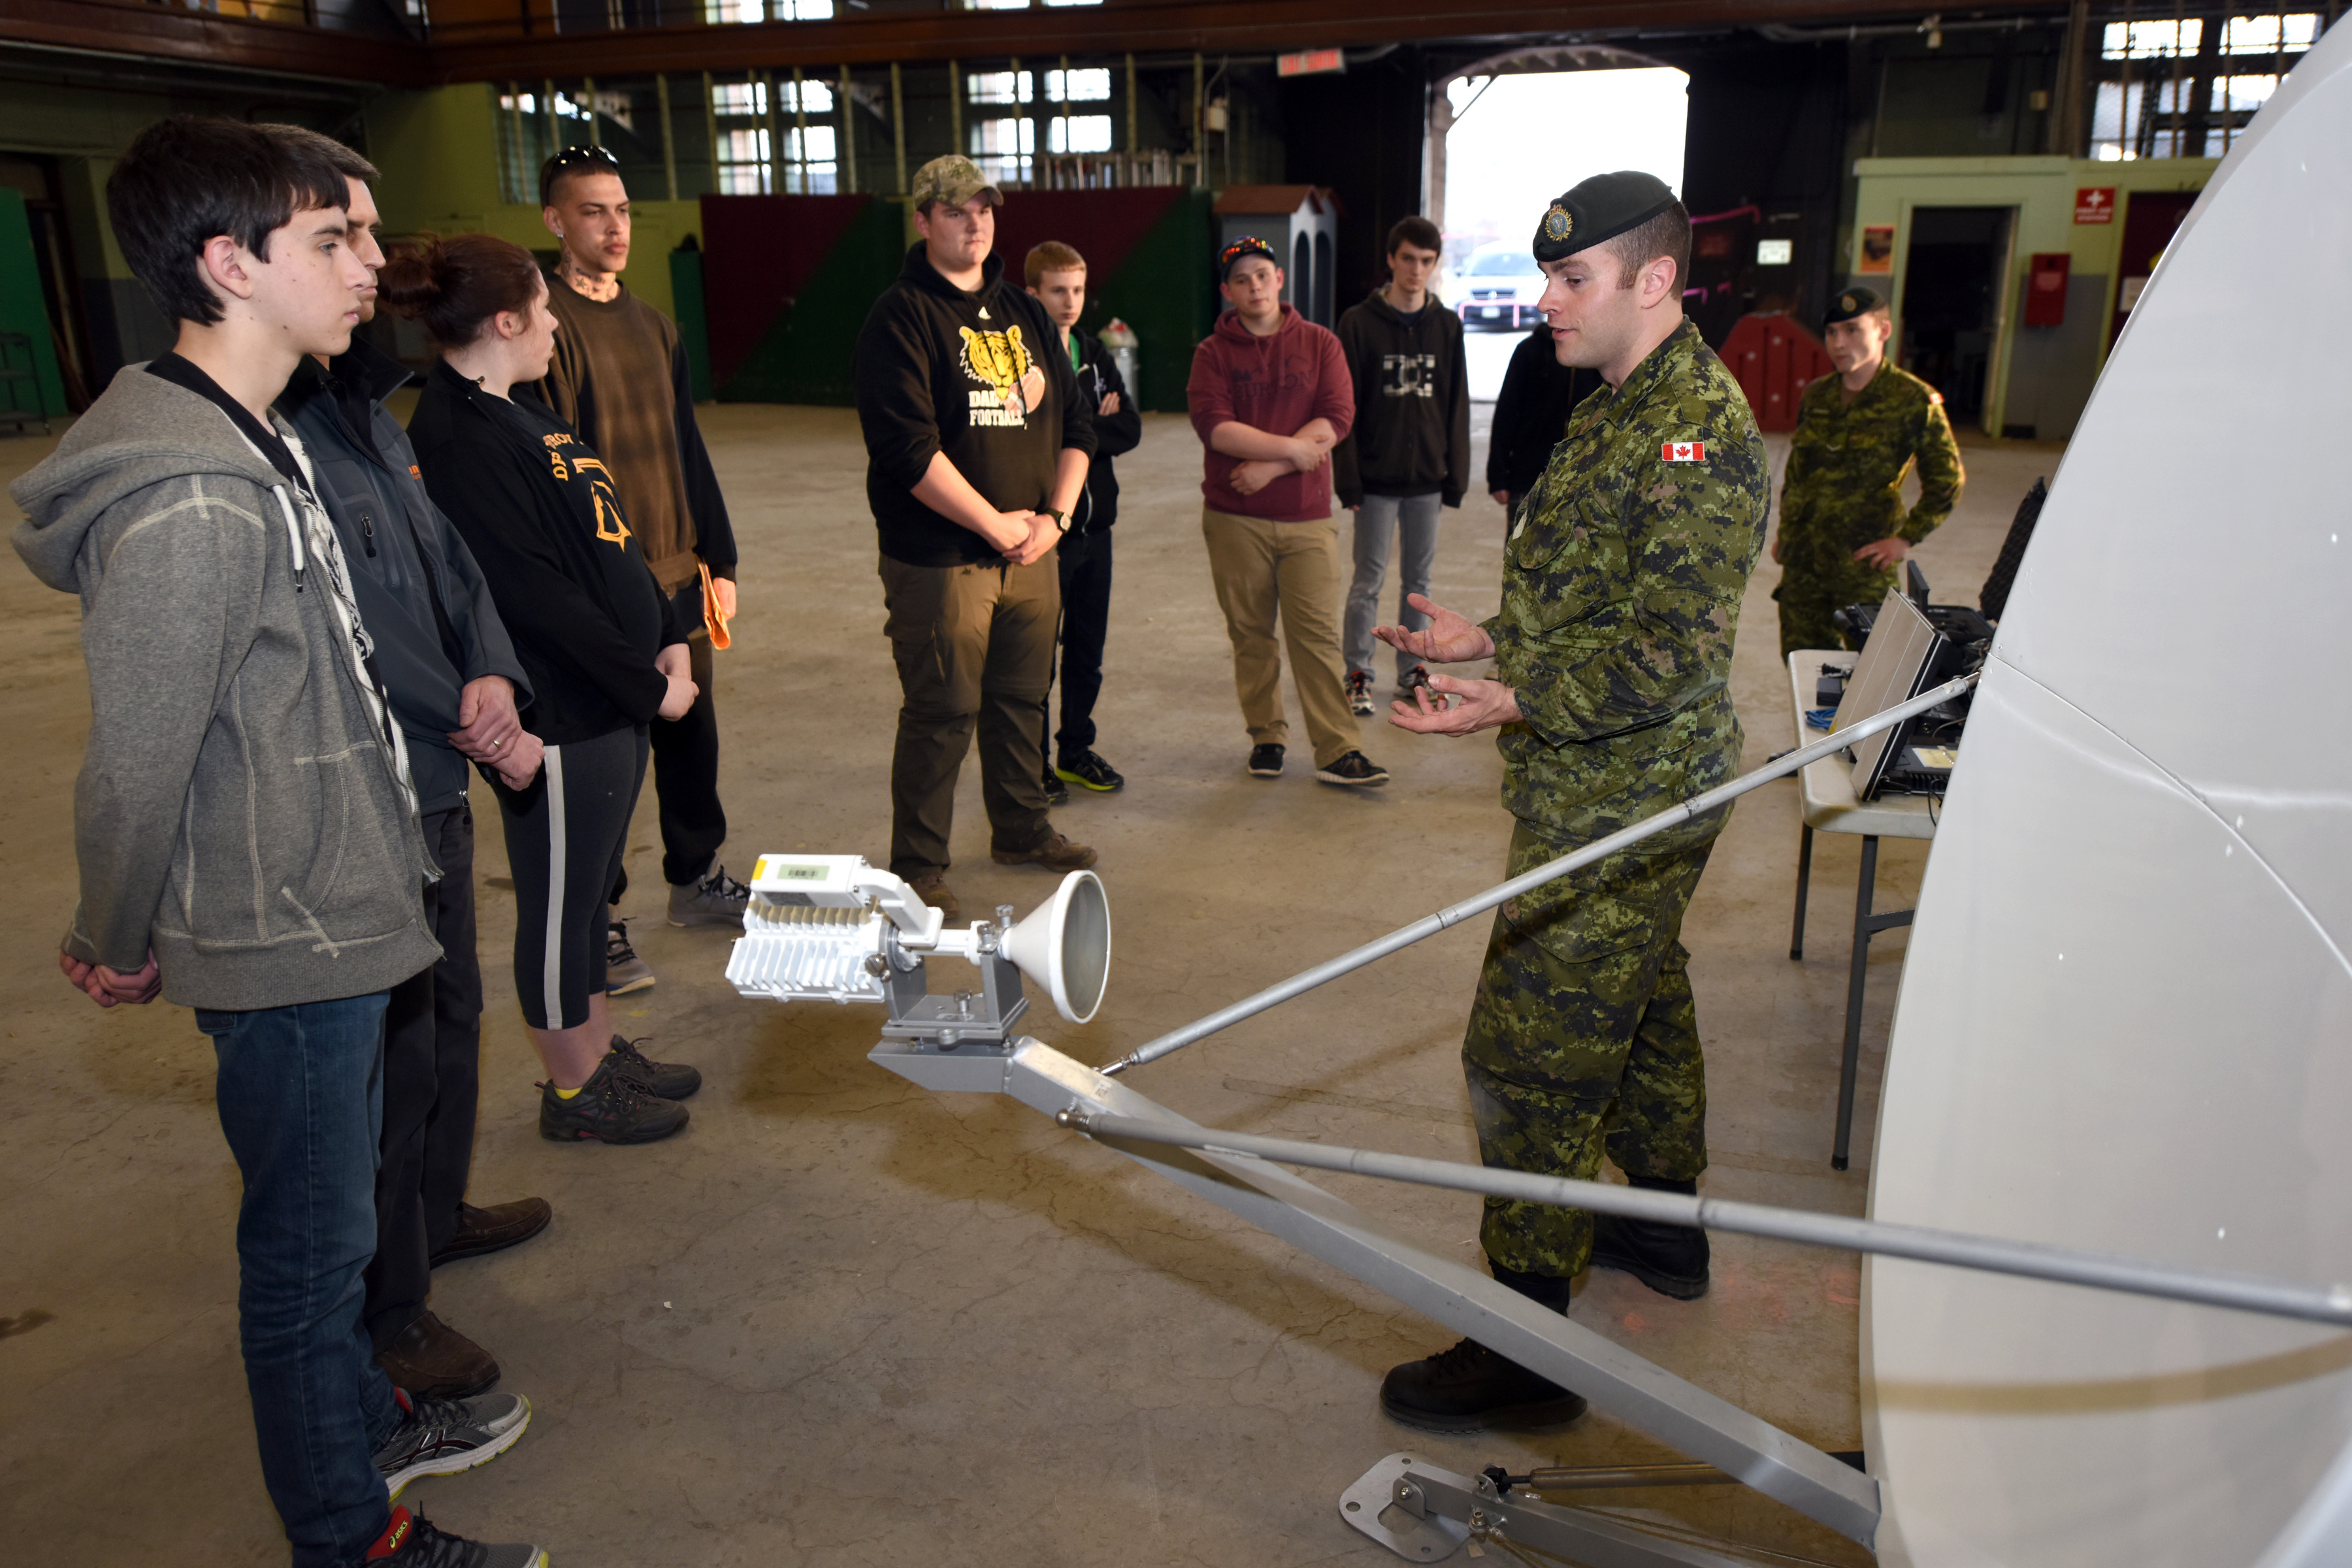 Sergeant Gordon Cummings, Regiment Training Sergeant and Private Zachary Cameron, a radio operator, both with 36 Signals Regiment in Halifax, Nova Scotia, describe a satellite communications dish to a group of candidates during the Army Civilian Engagement program in the Halifax Armouries on May 7, 2015.